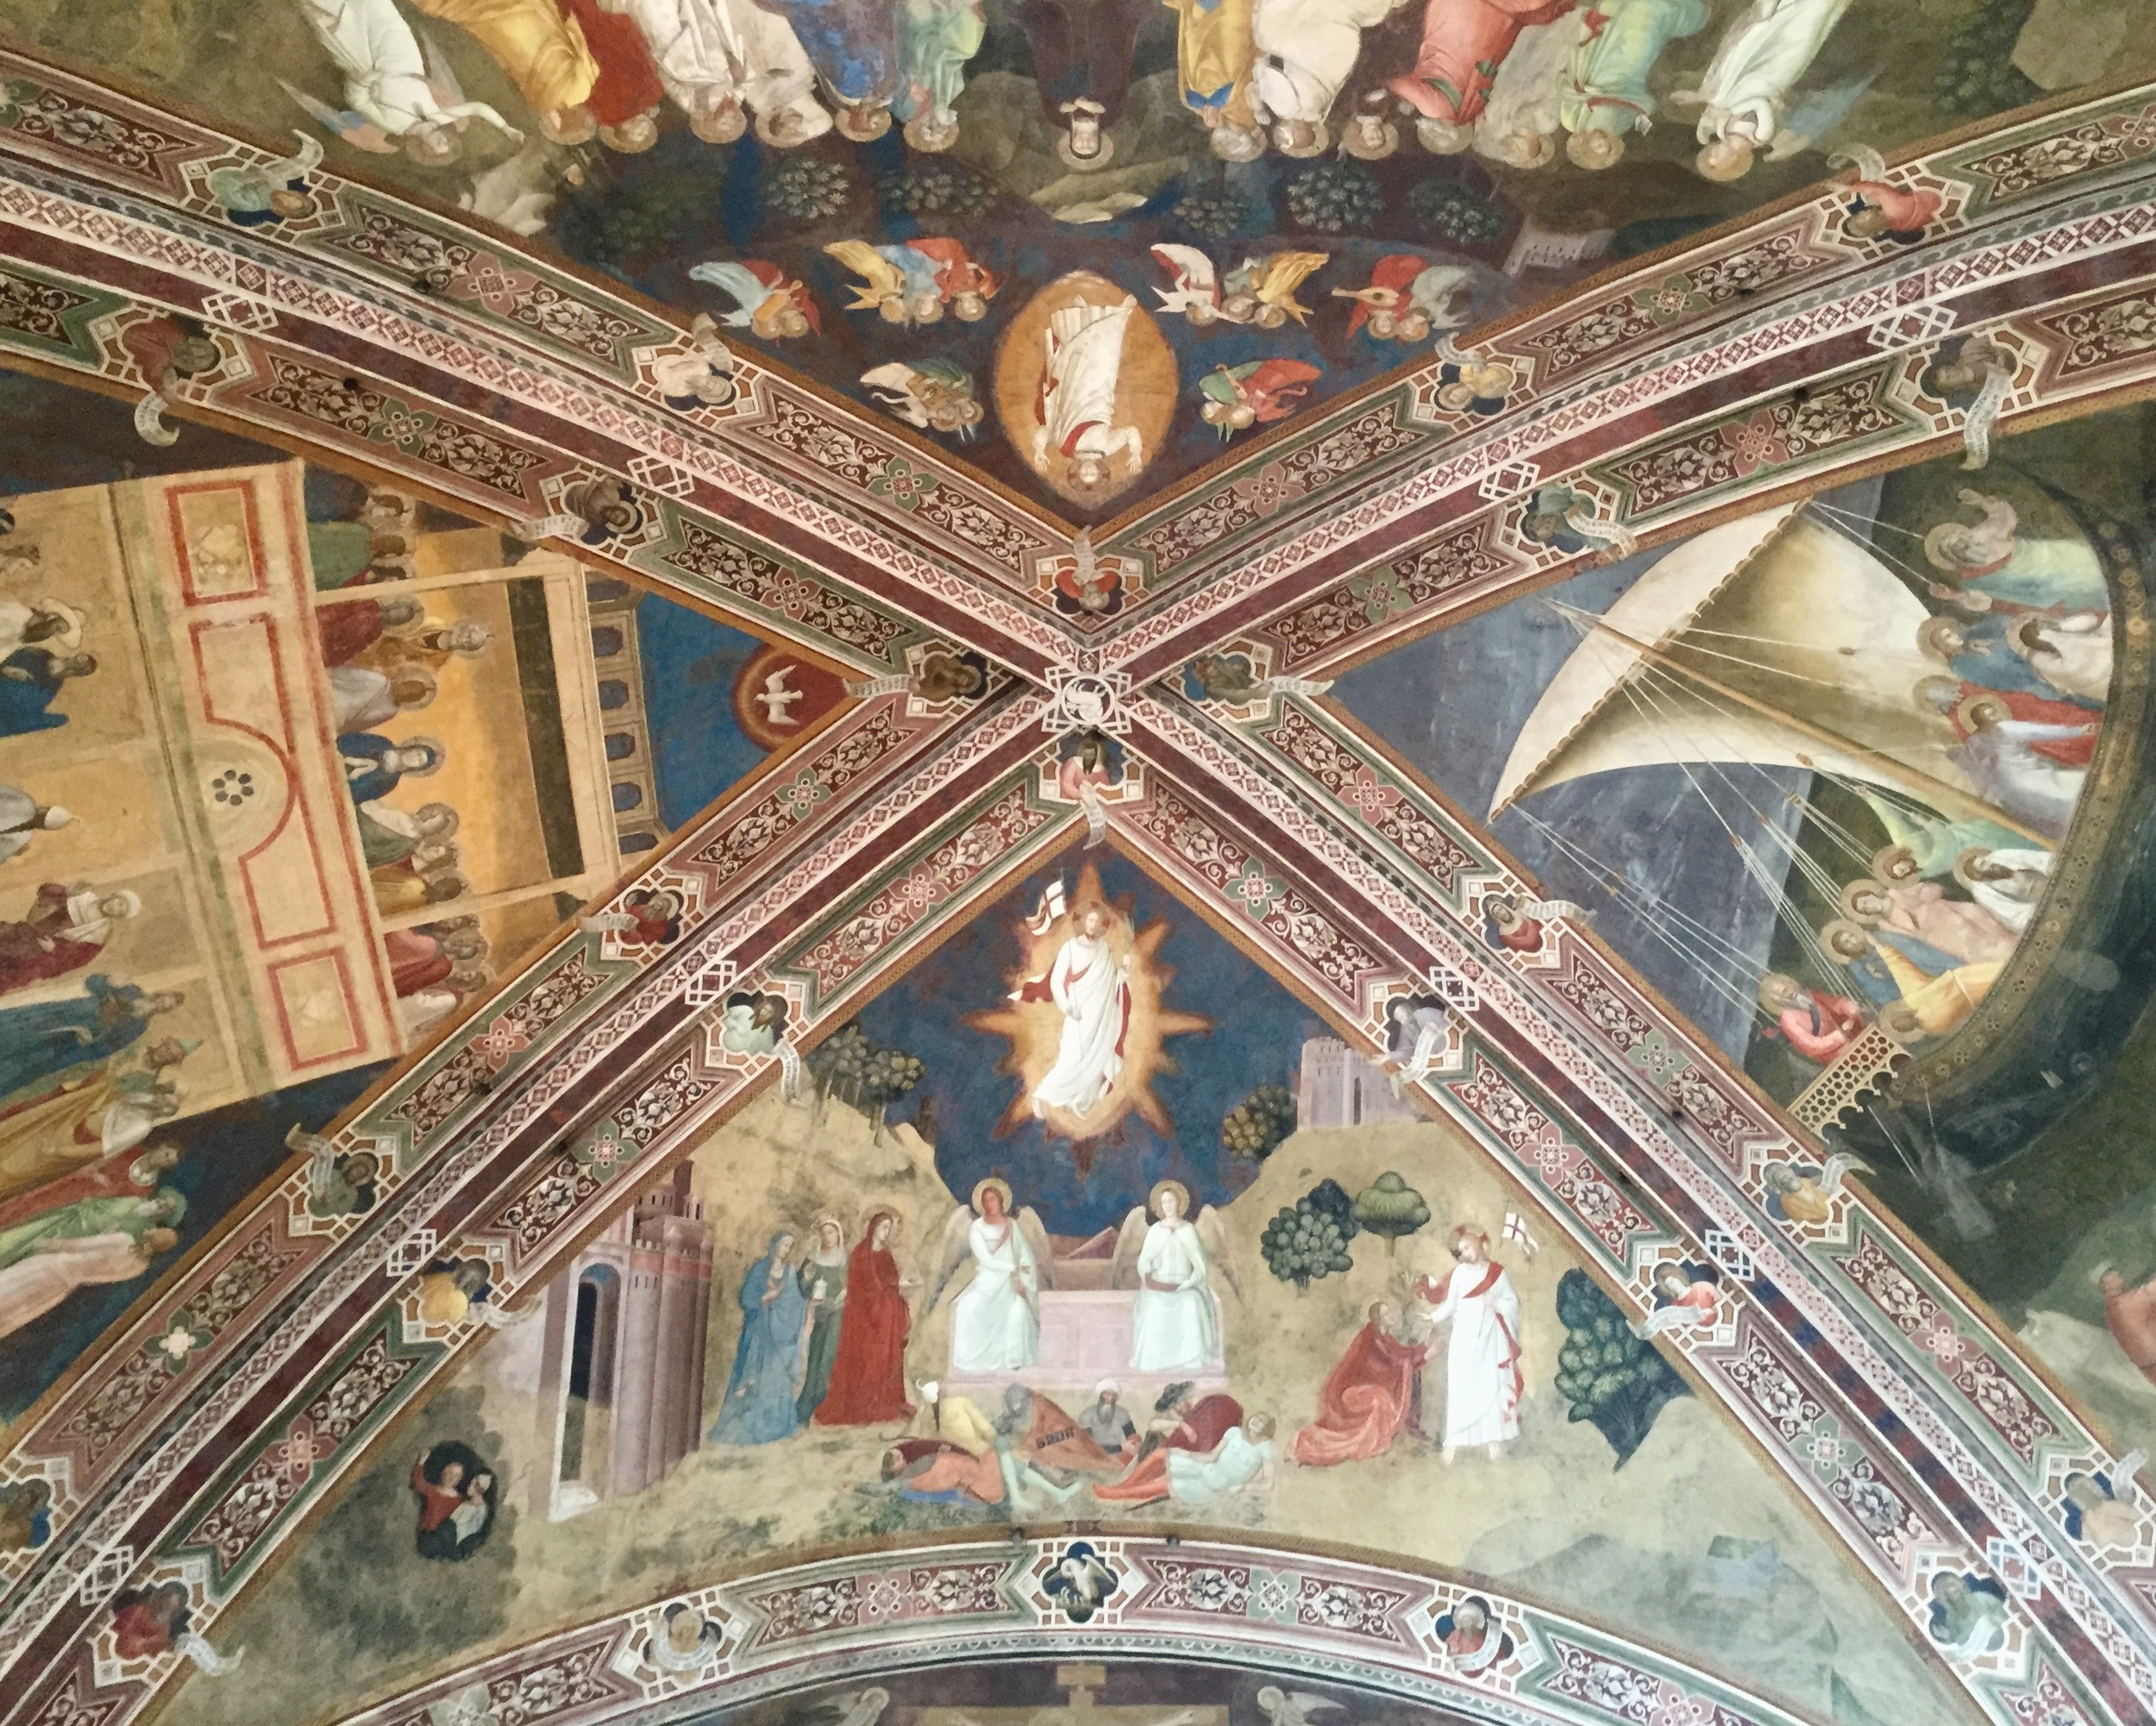 Andrea di Bonaiuto, Ceiling of the Spanish Chapel at Santa Maria Novella, 1365-1367, Fresco